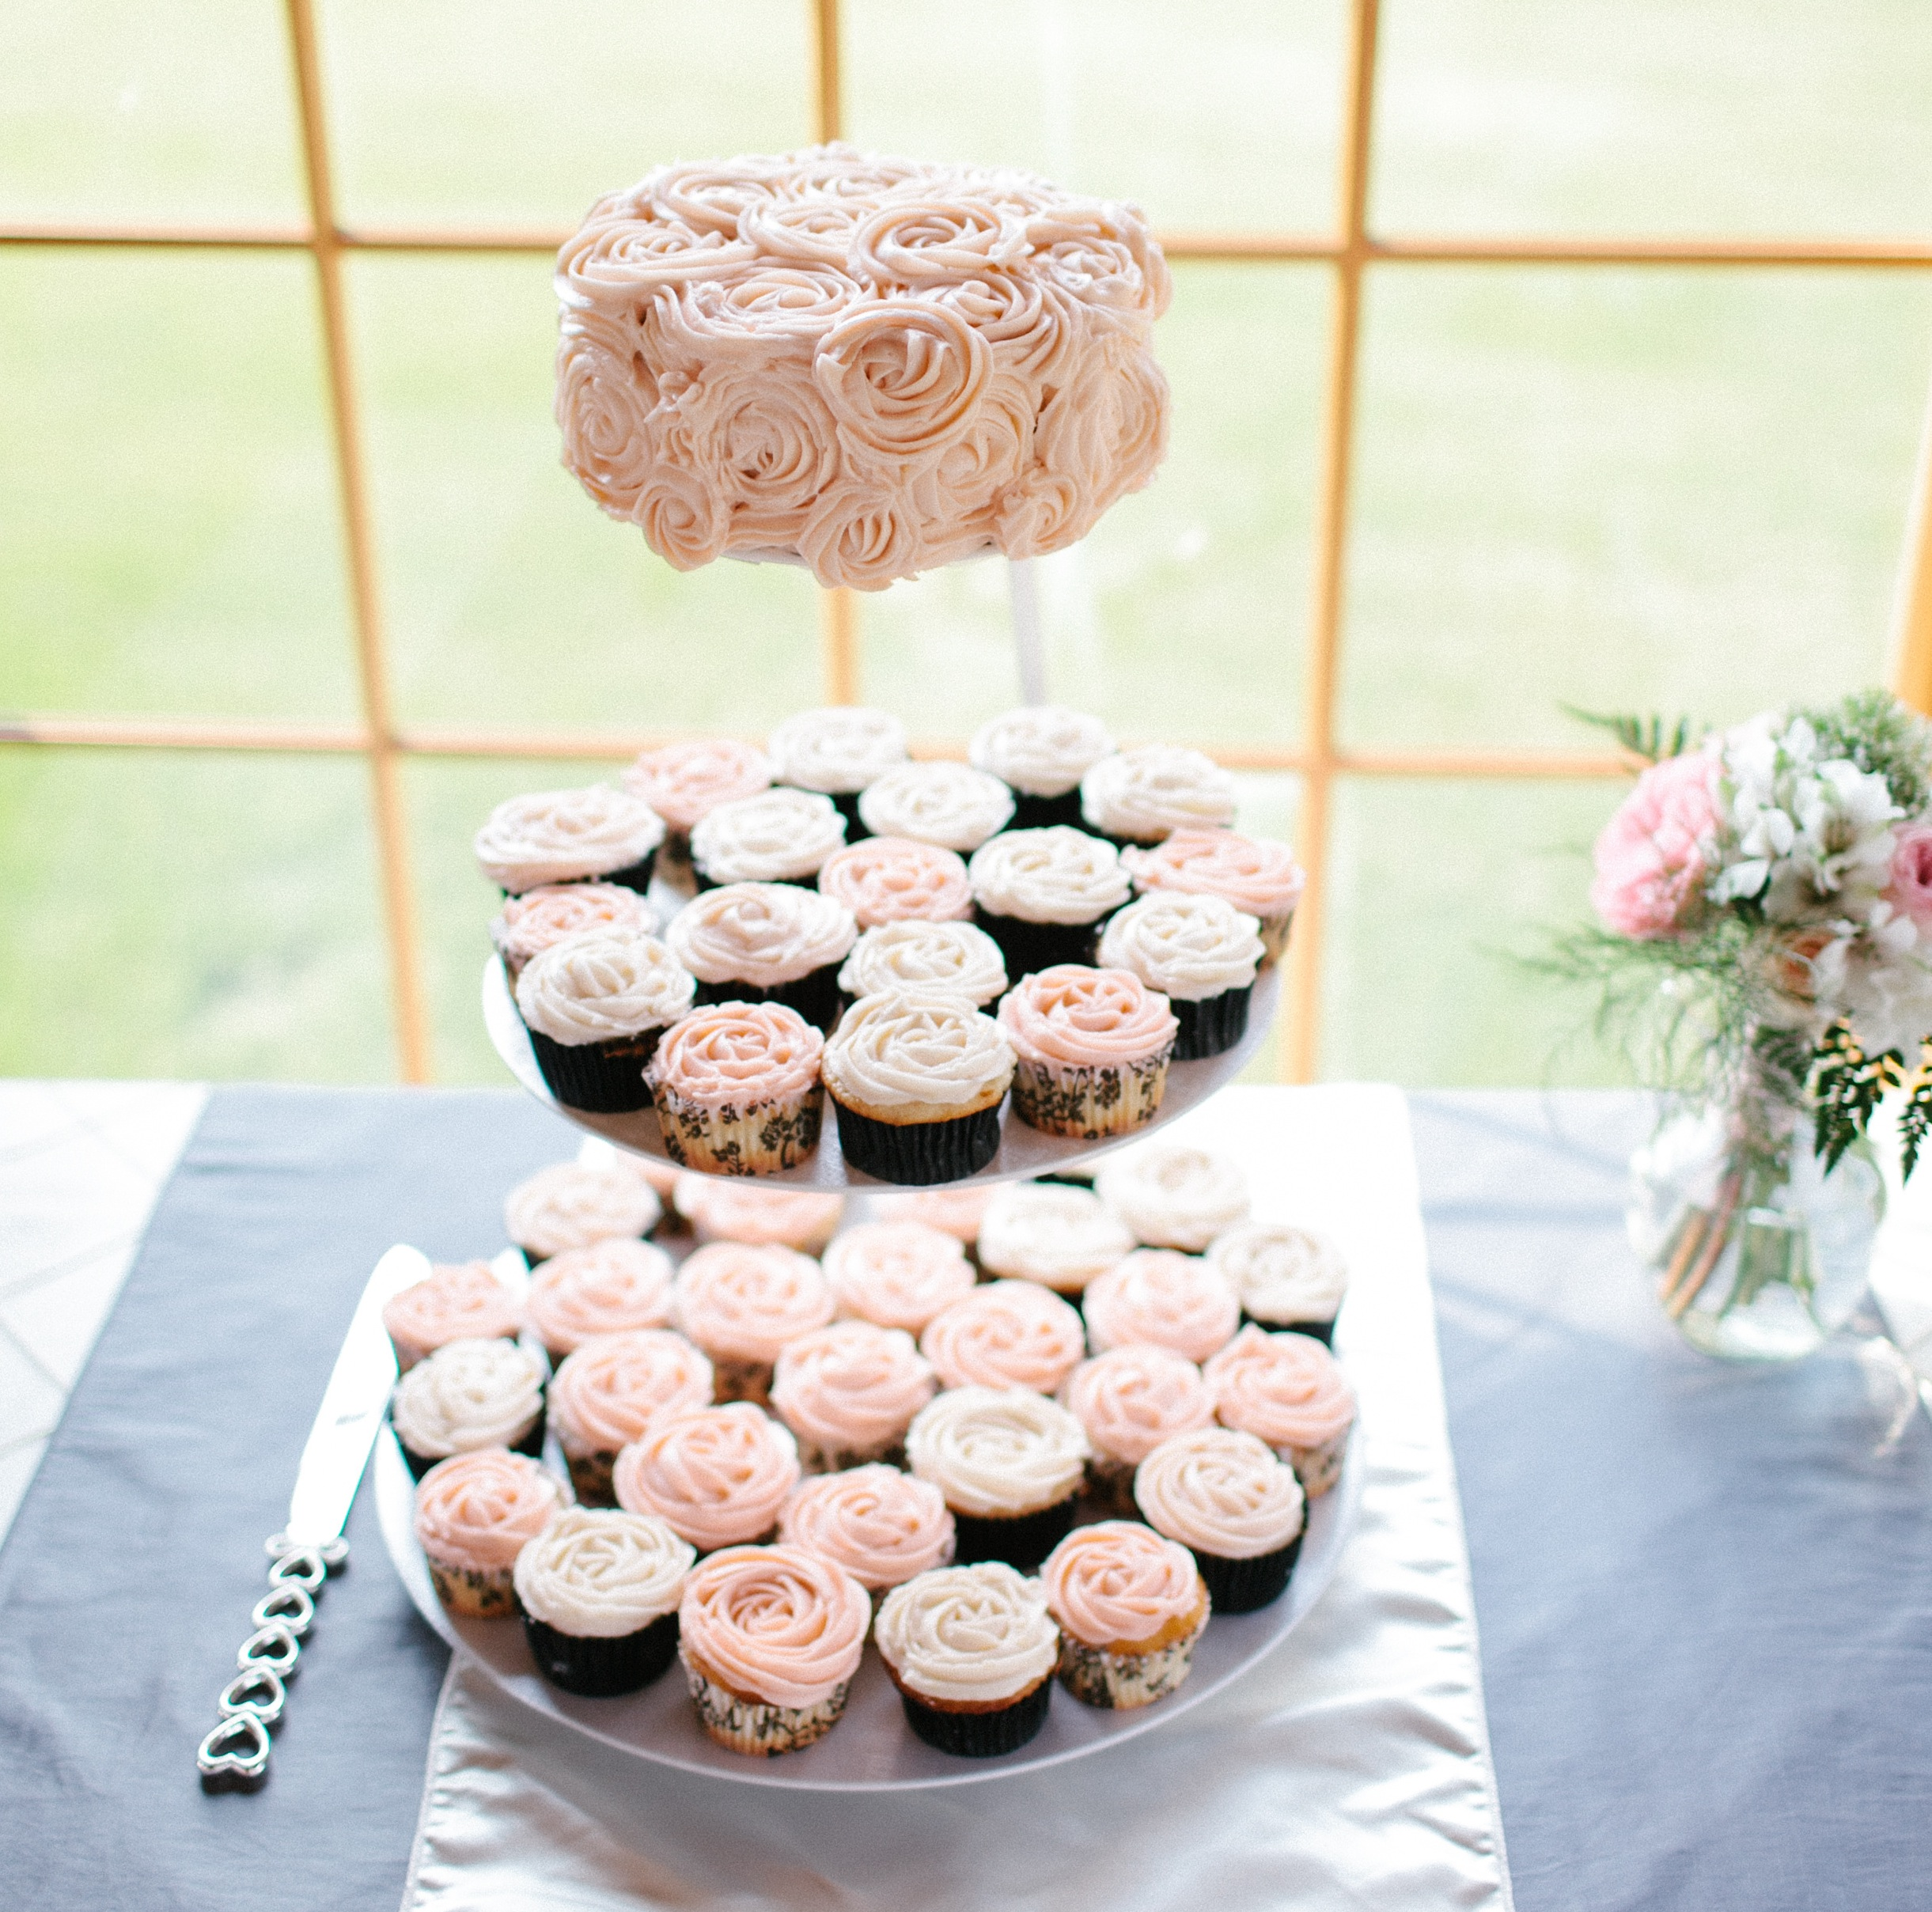 Light Pink Wedding Cupcakes topped with a Rosette Frosted Cake | photo by blf Studios | wedding by Madeline's Weddings